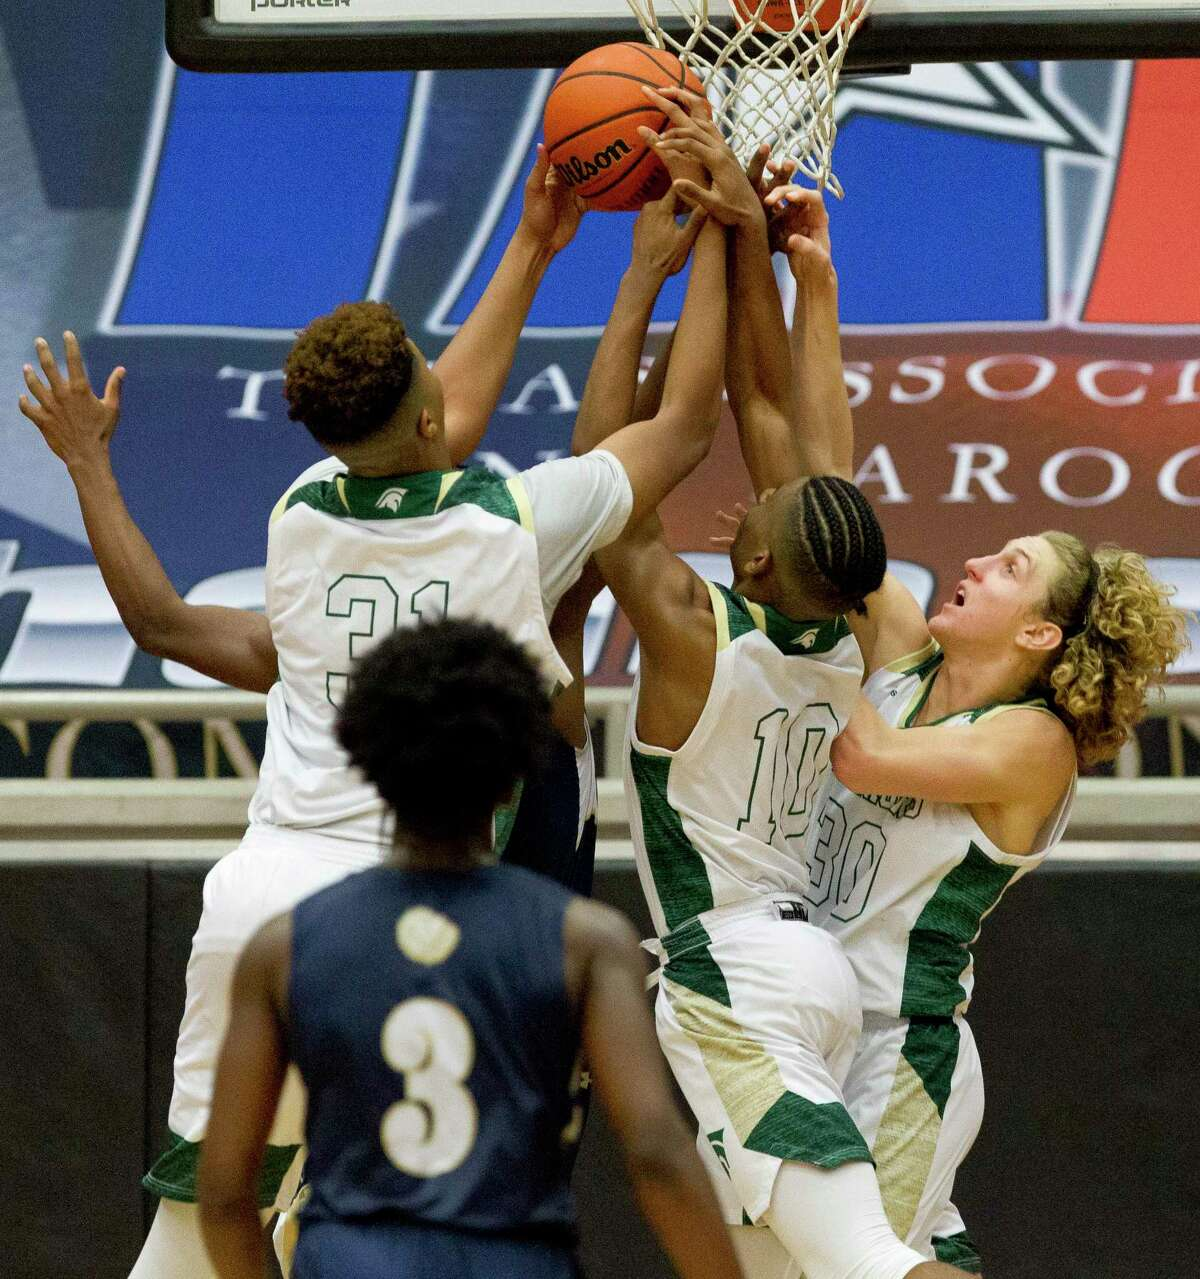 The Woodlands Christian Academy center Emanuel Jones (31), point guard Bakari LaStrap (10) and shooting guard Luke Mansfield (30) are all part of a senior class seeking a second state title.